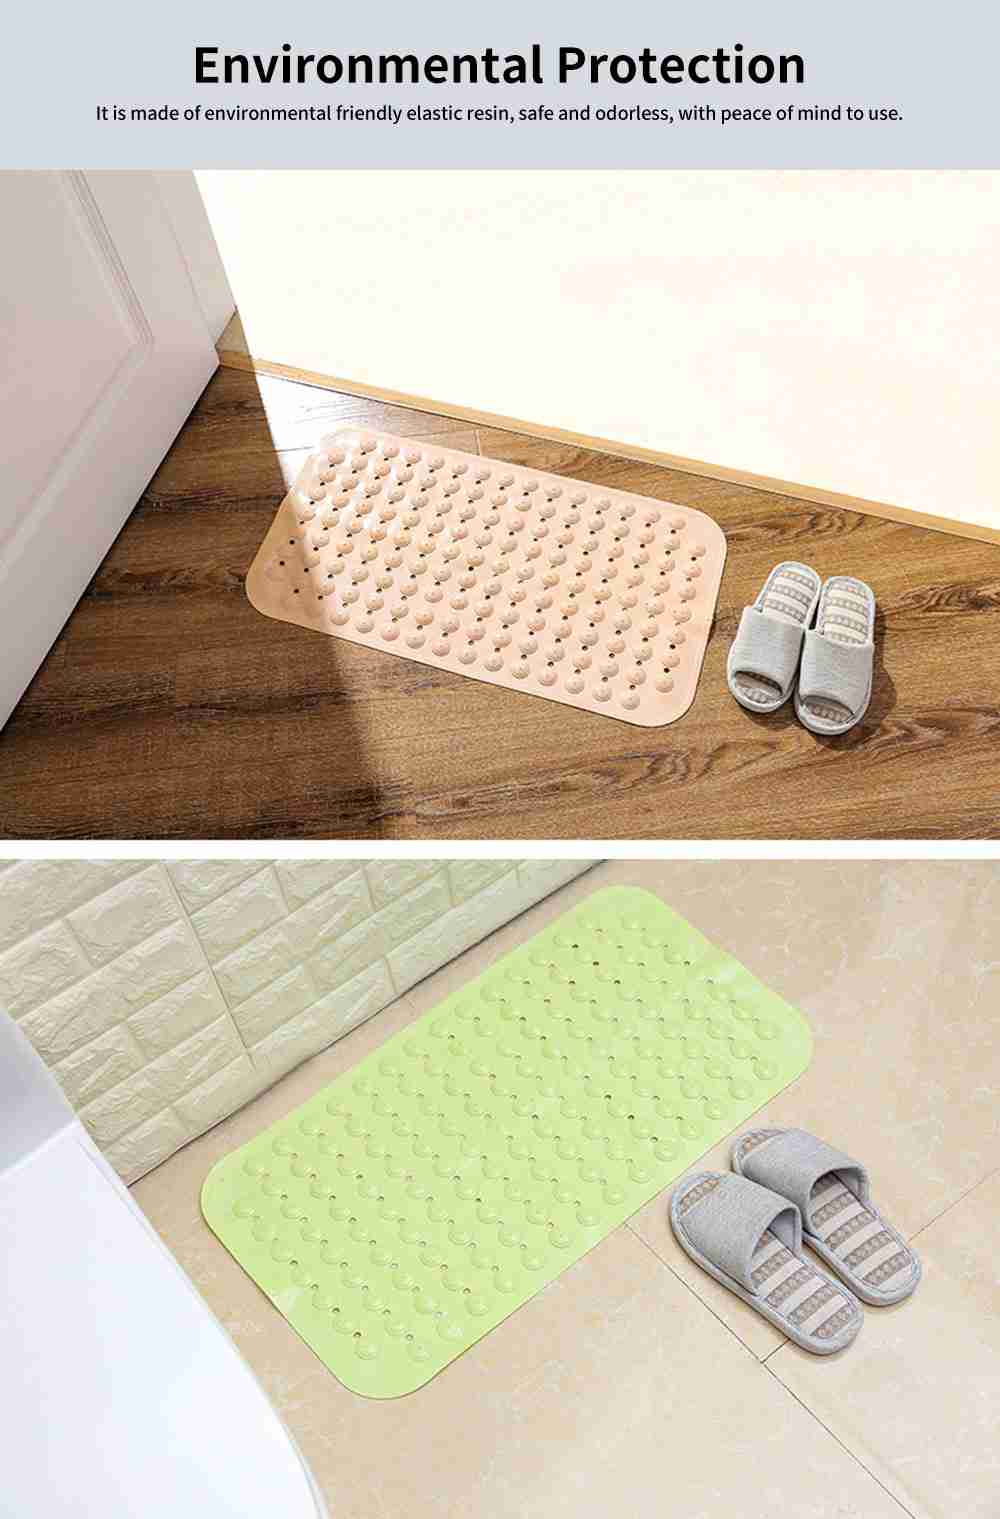 Bathroom Anti Slip Floor Mat, Suction Cup Massage Mat, Toilet Water-Proof Mat 4